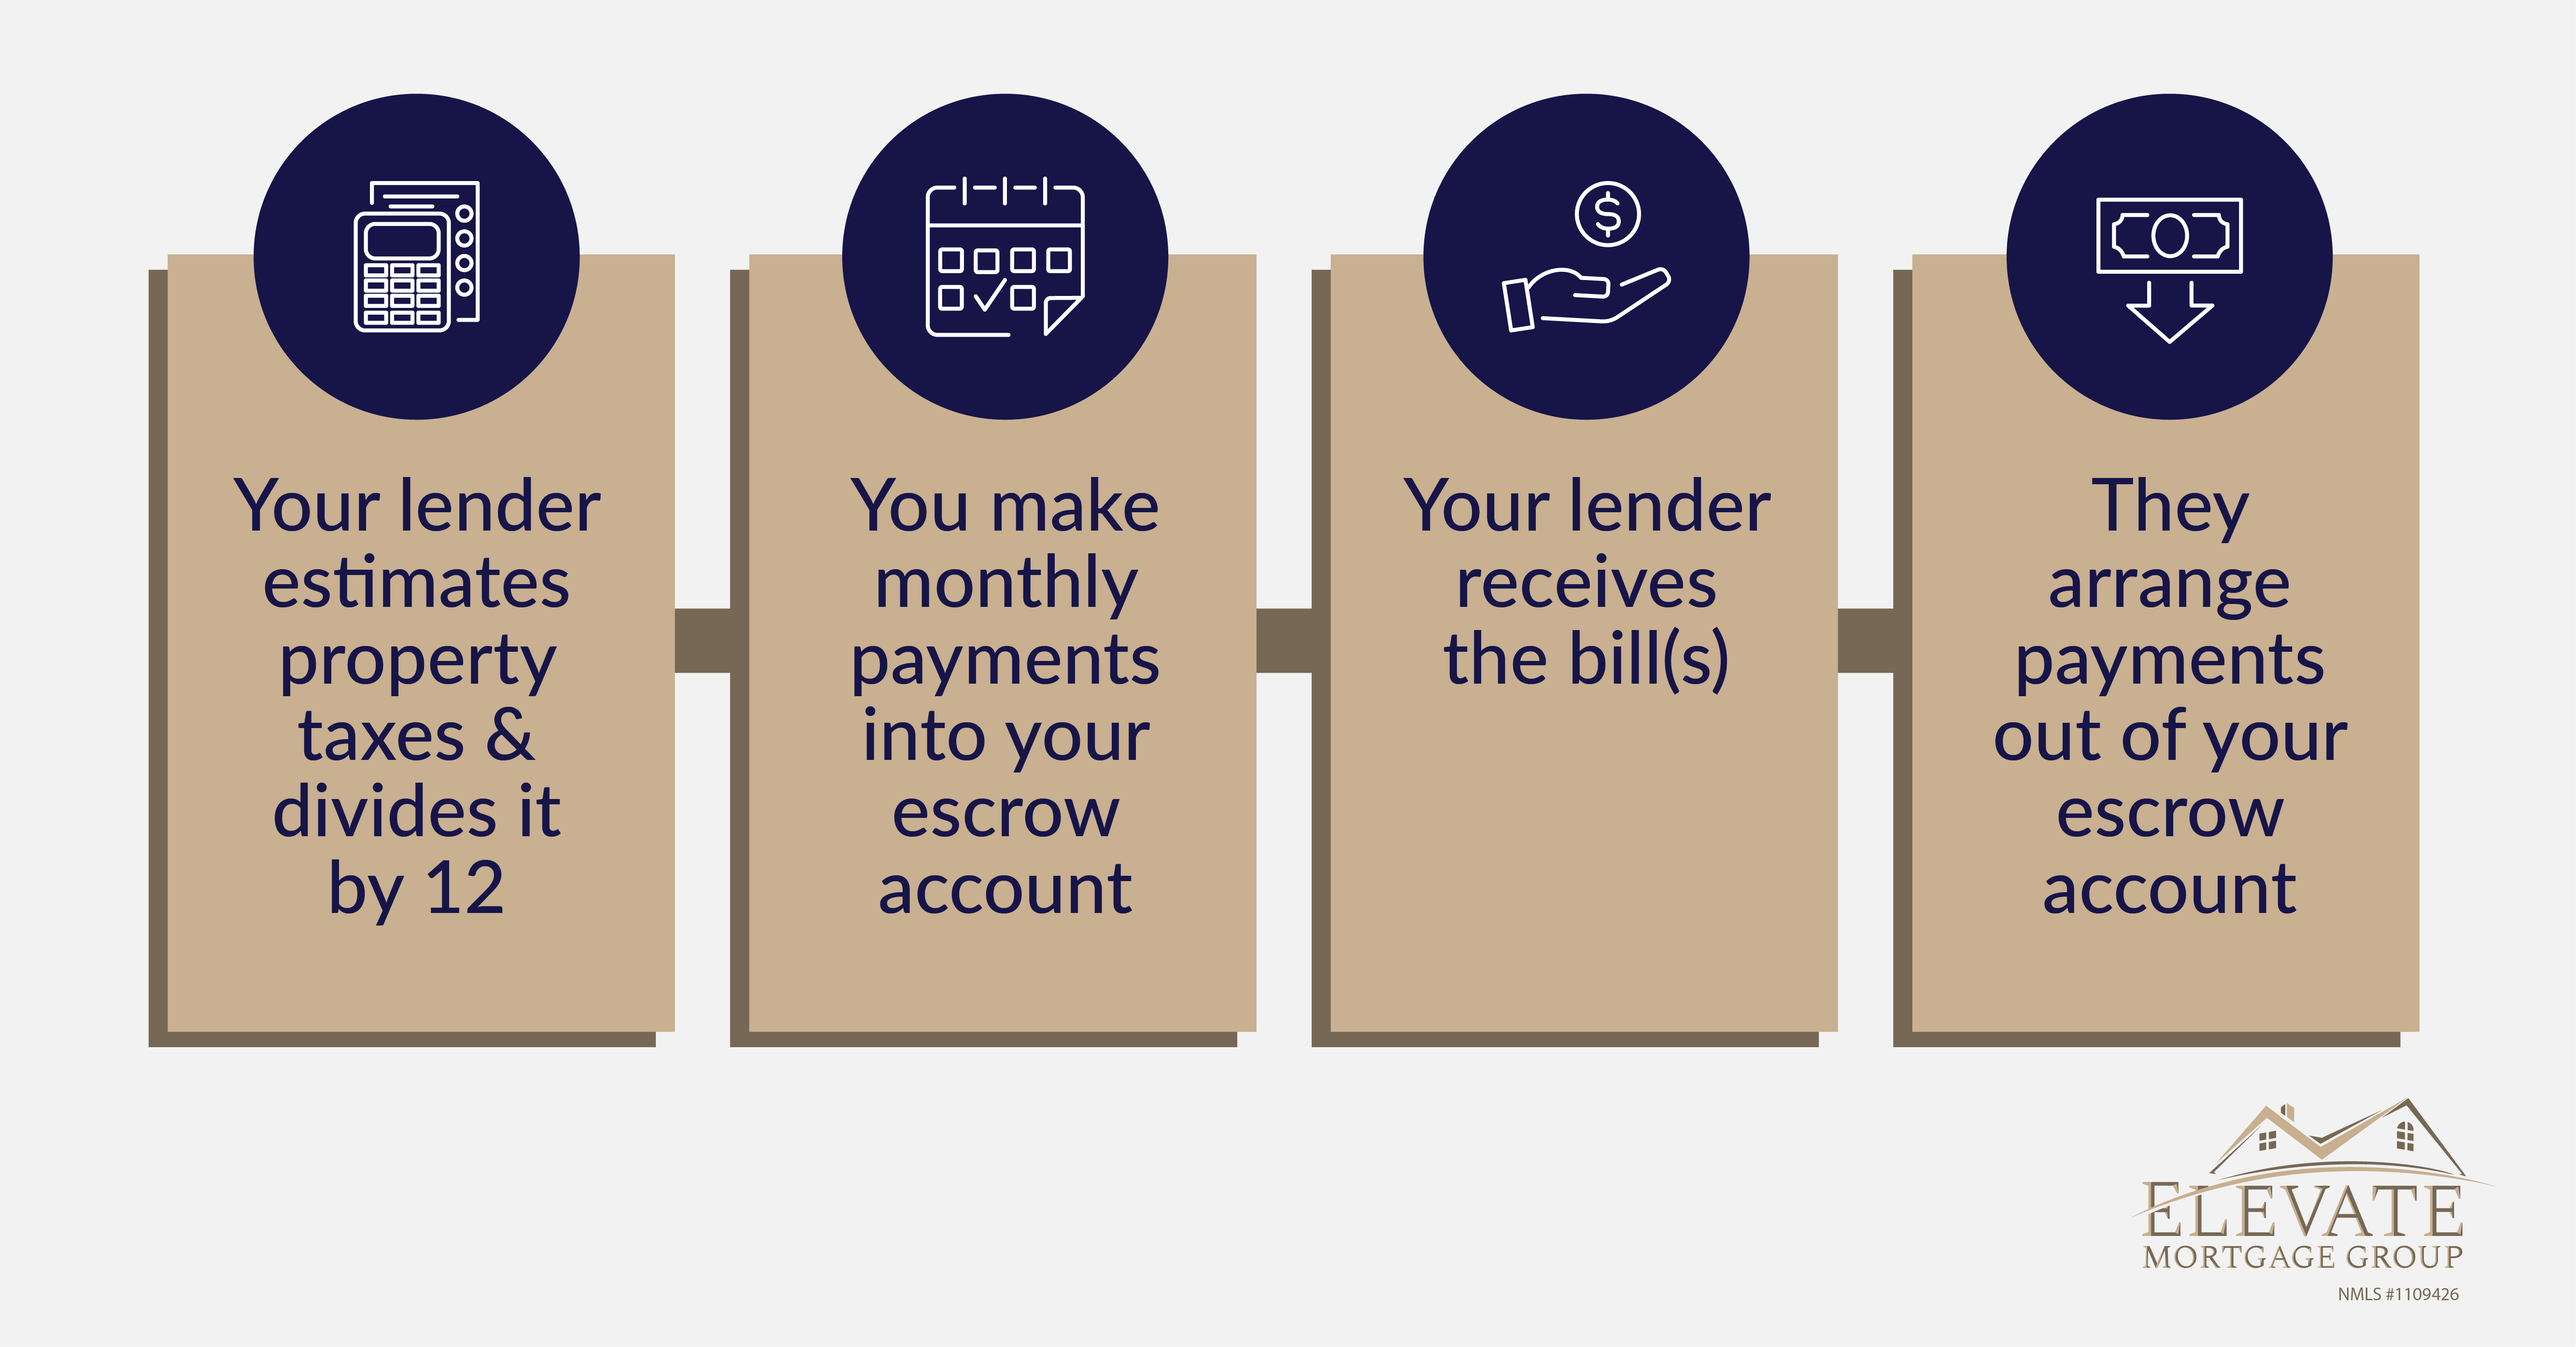 The process for how escrow is used to pay your homeowners insurance and property taxes